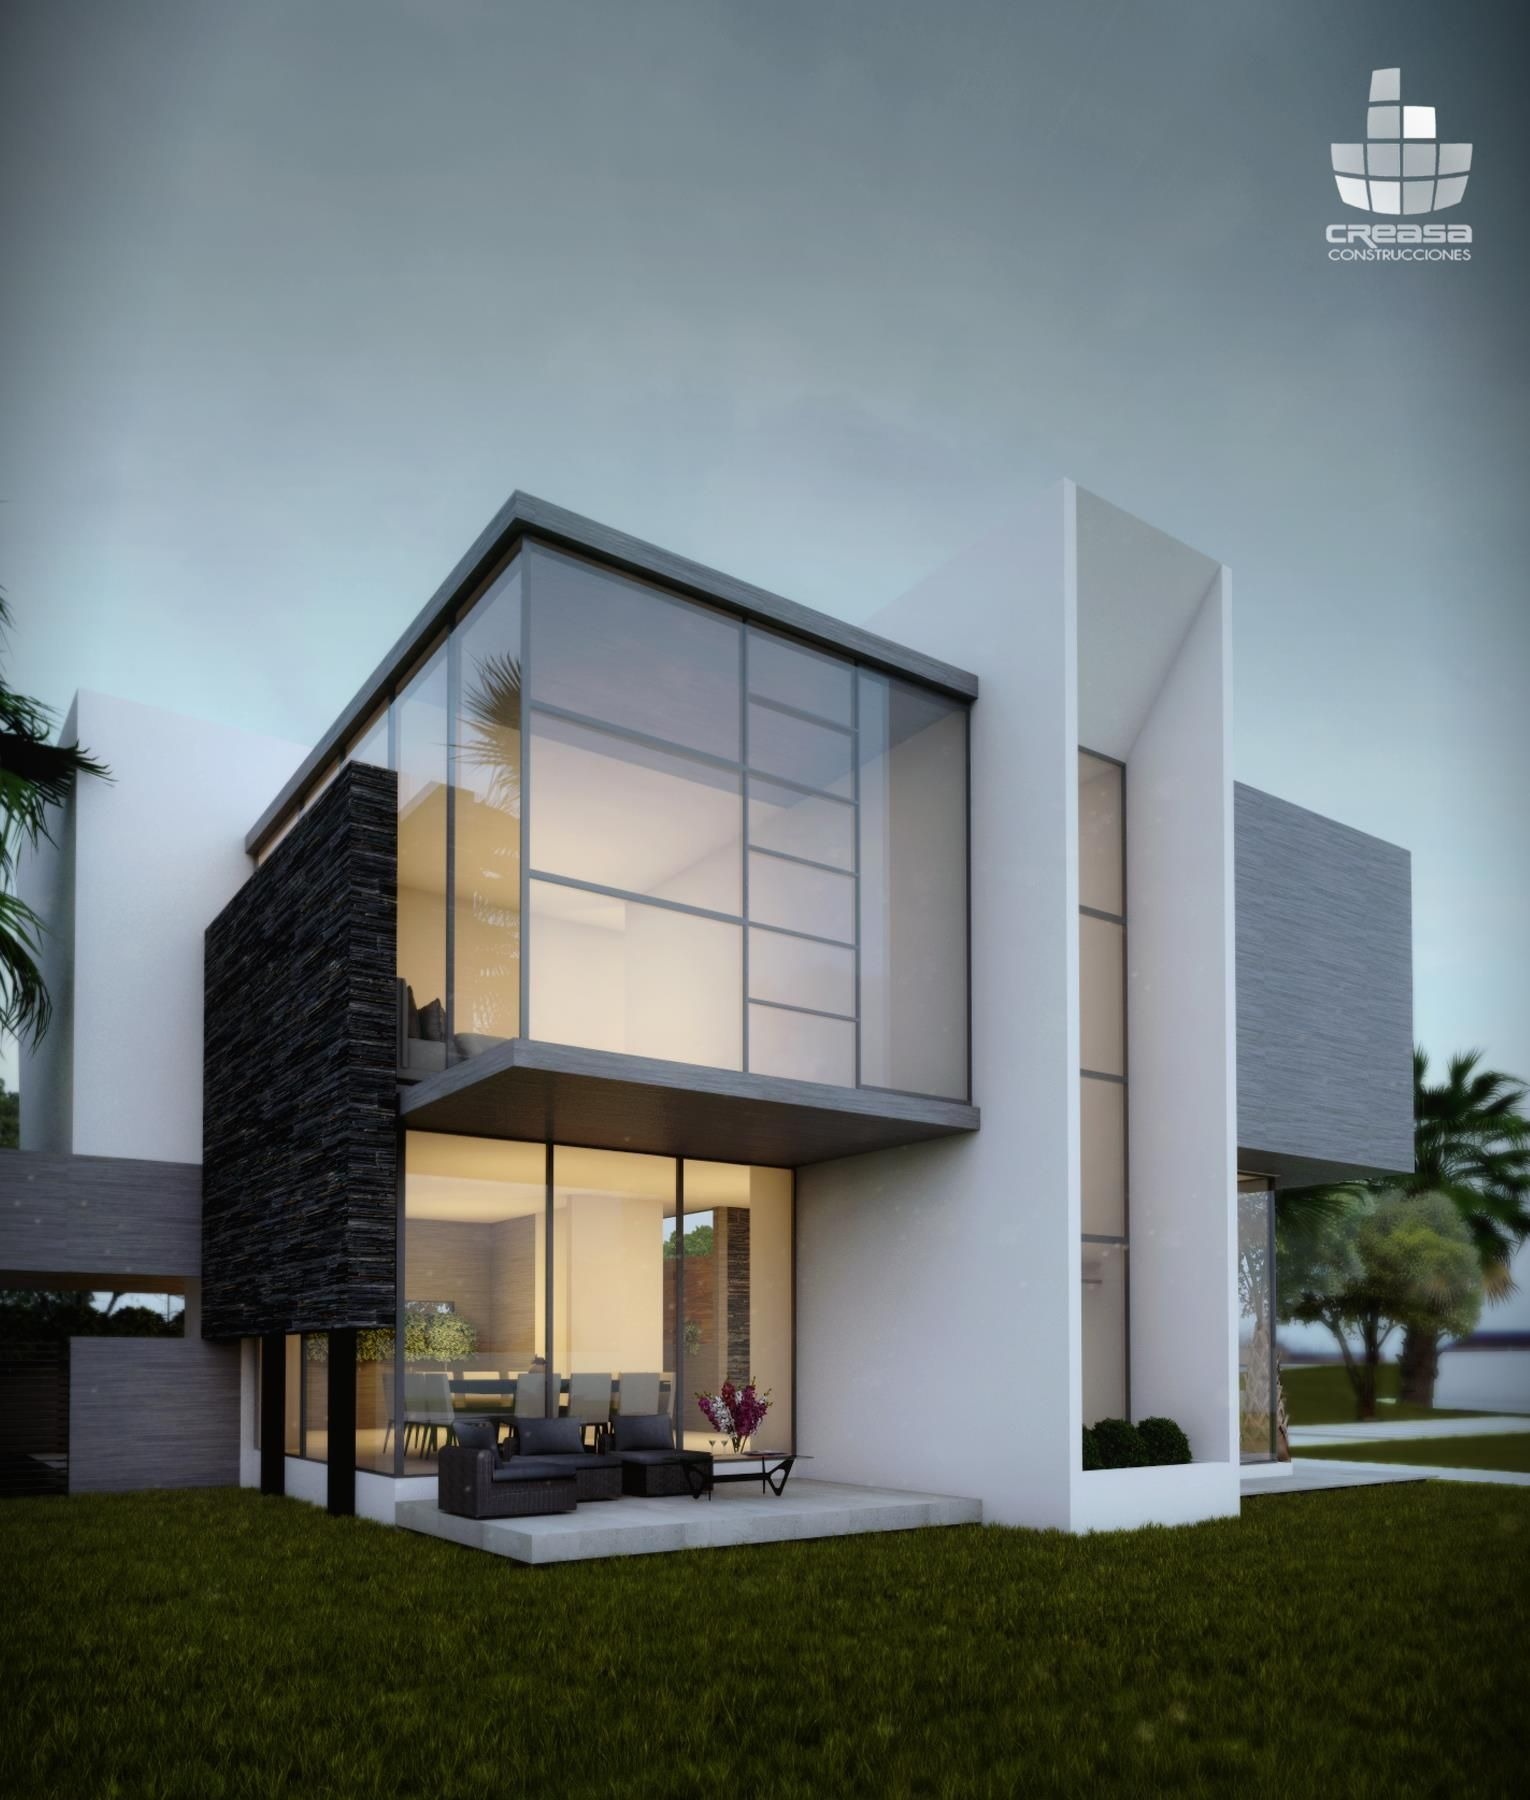 Creasa modern architecture pinterest villas house for Design home modern